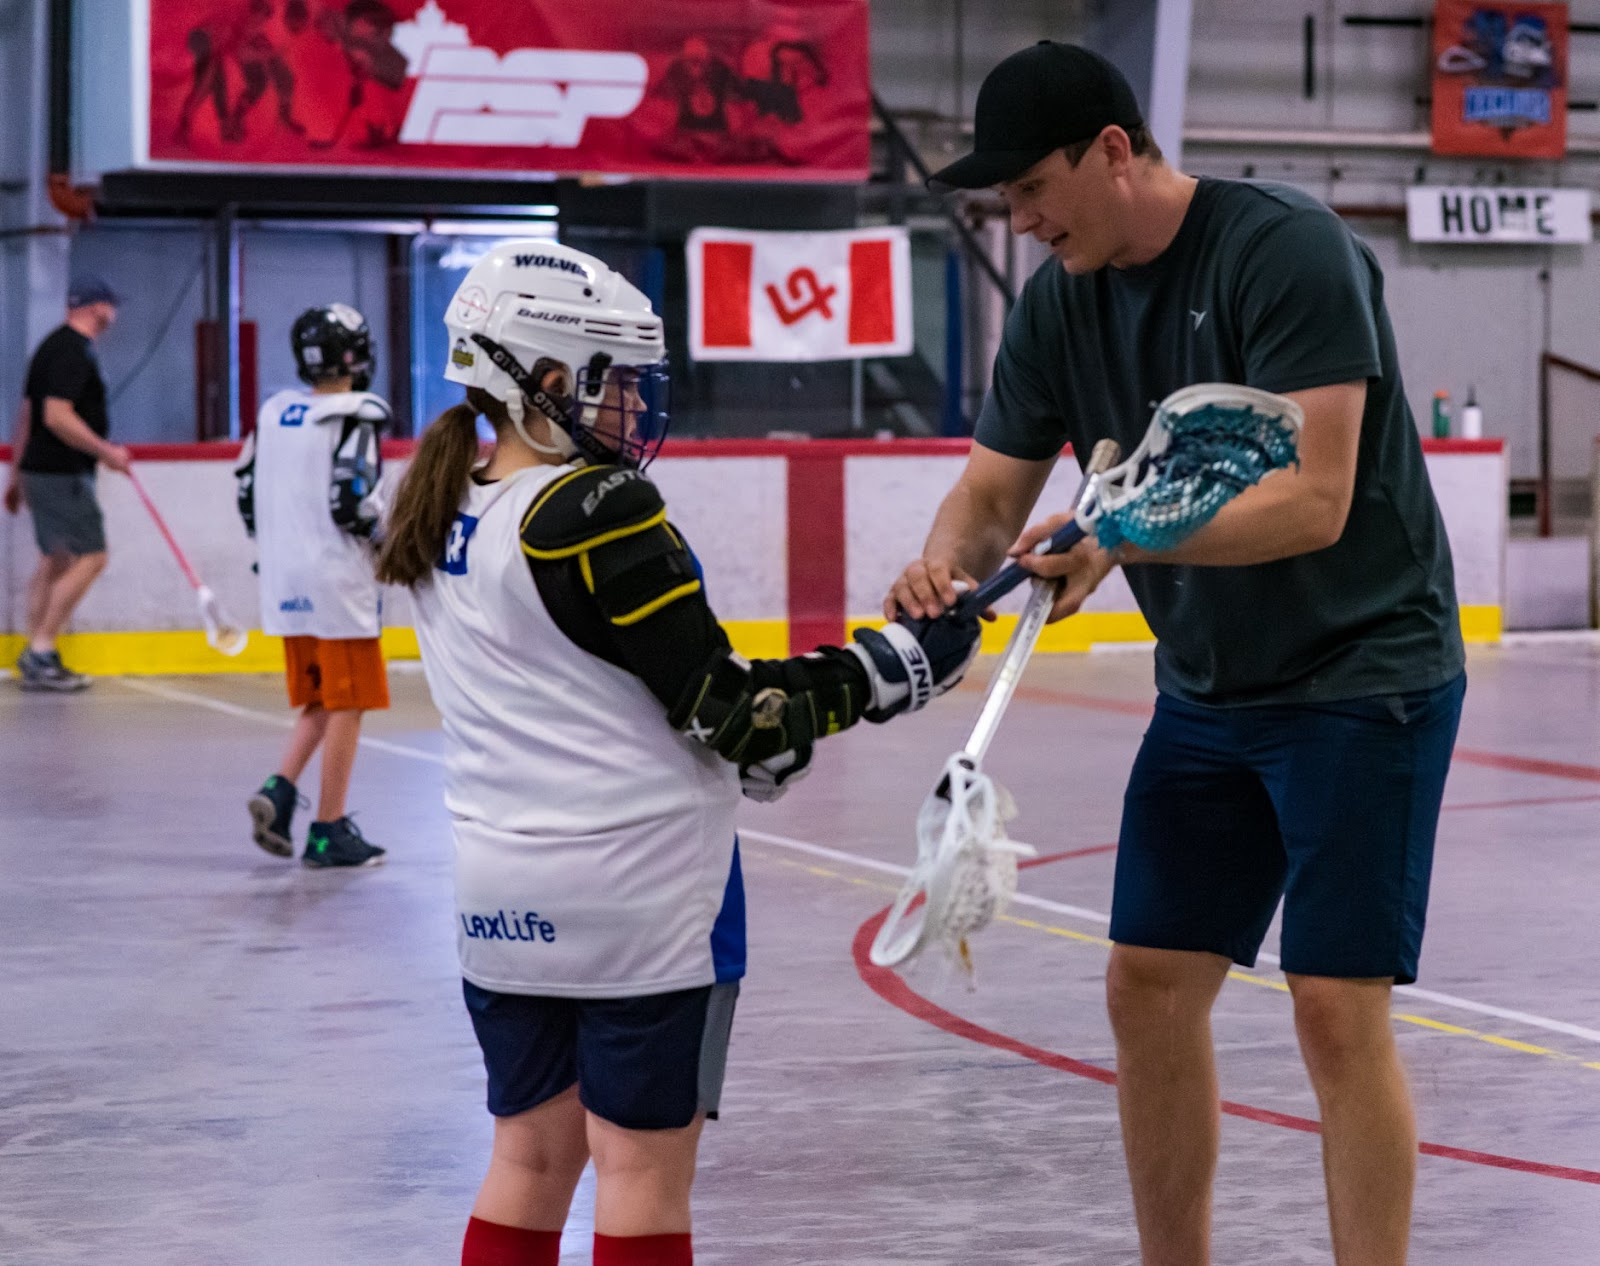 New England Black Wolves star forward Steph LeBlanc shows a Laxlife camper how to properly hold the stick